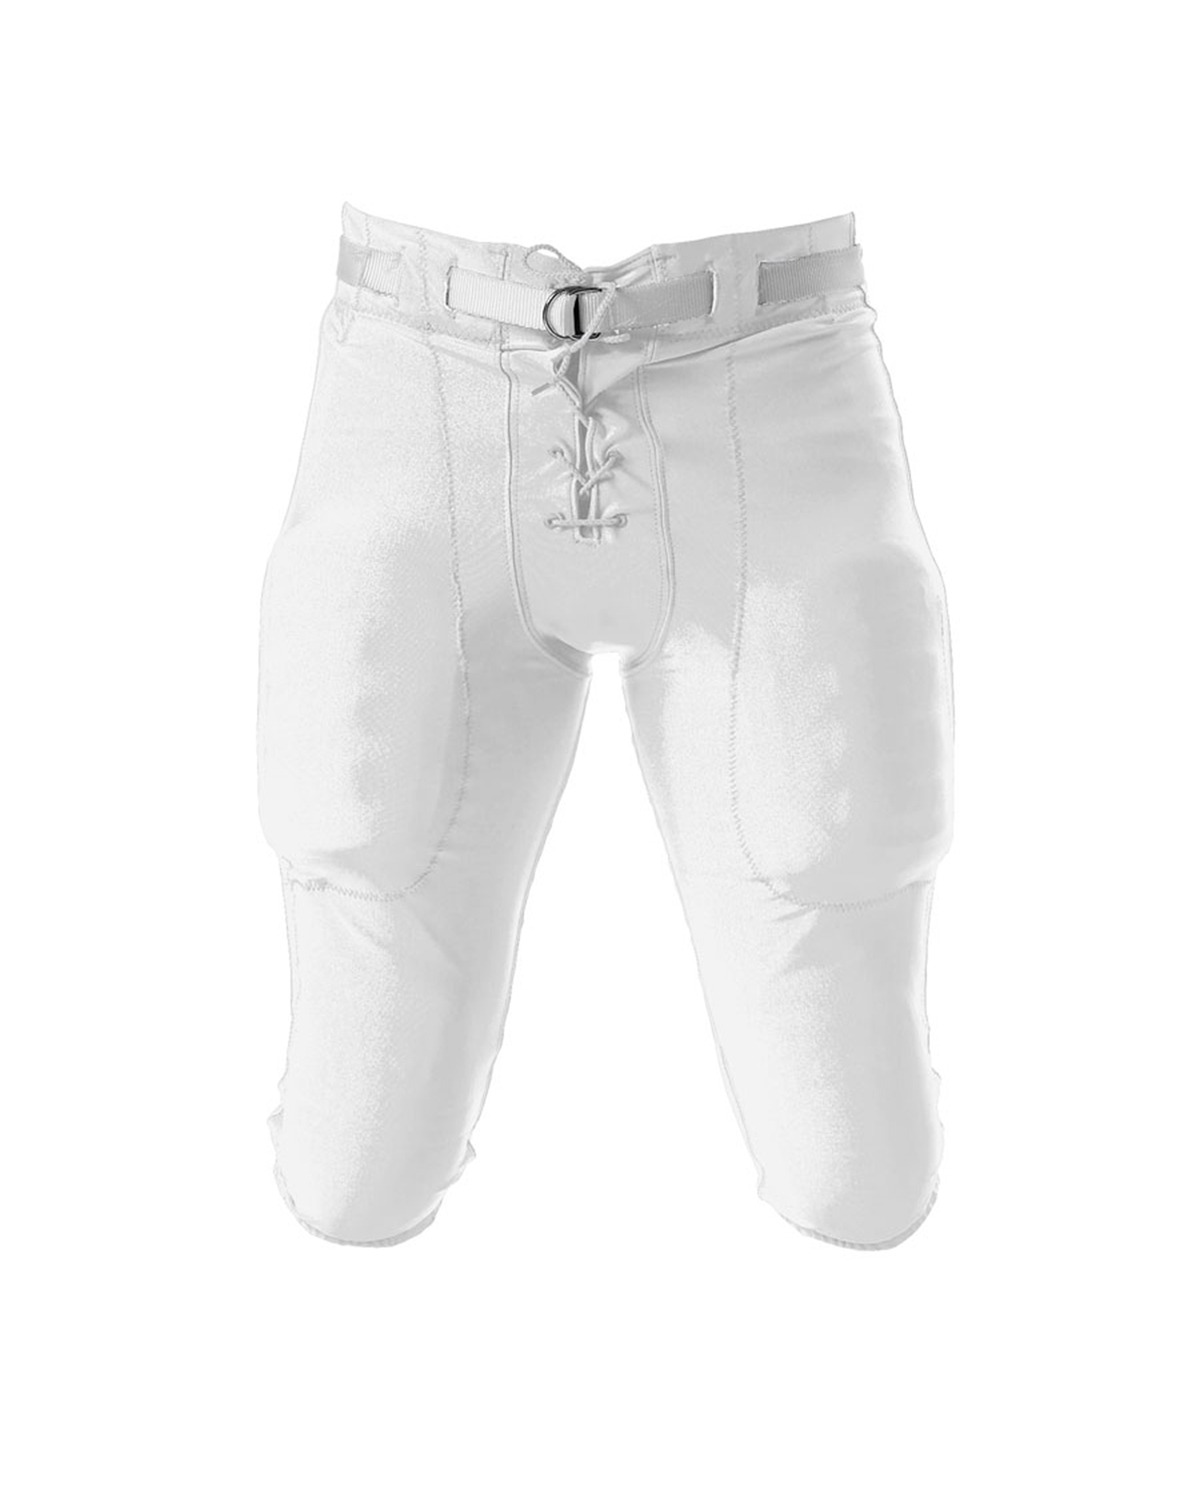 A4 Drop Ship - NB6141 Youth Football Game Pant